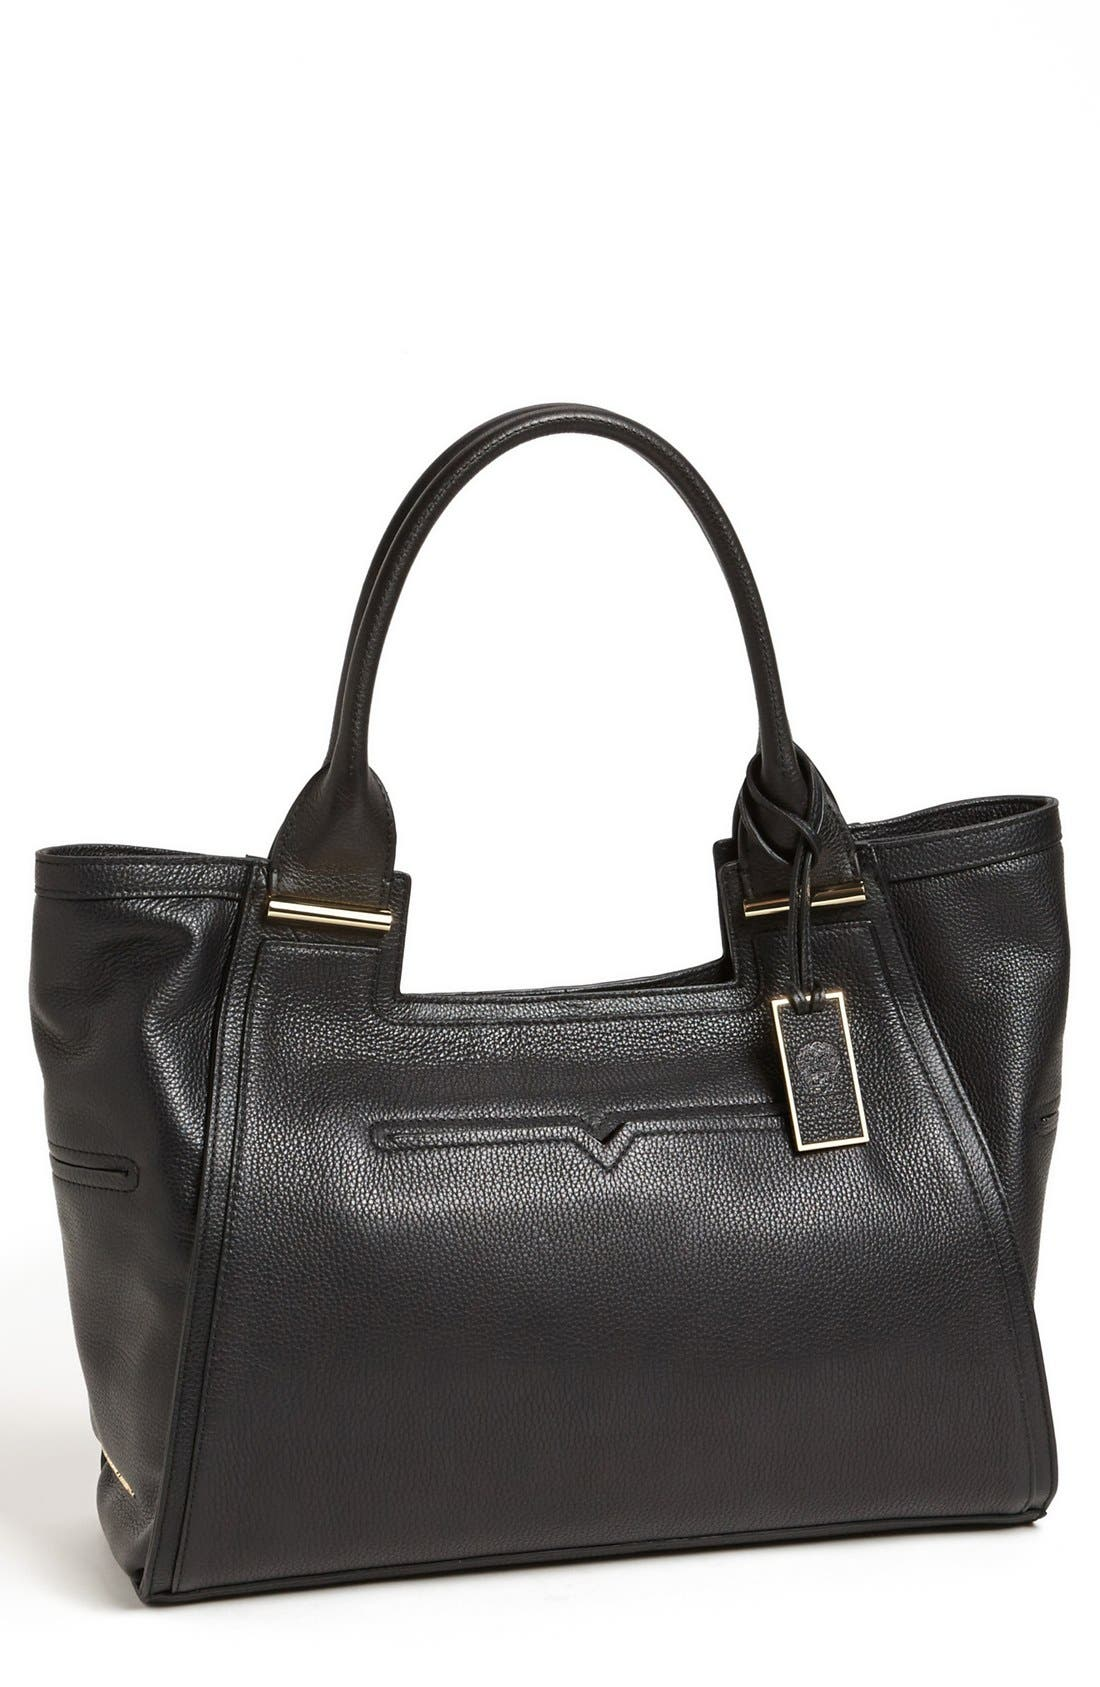 Main Image - Vince Camuto 'Billy' Tote